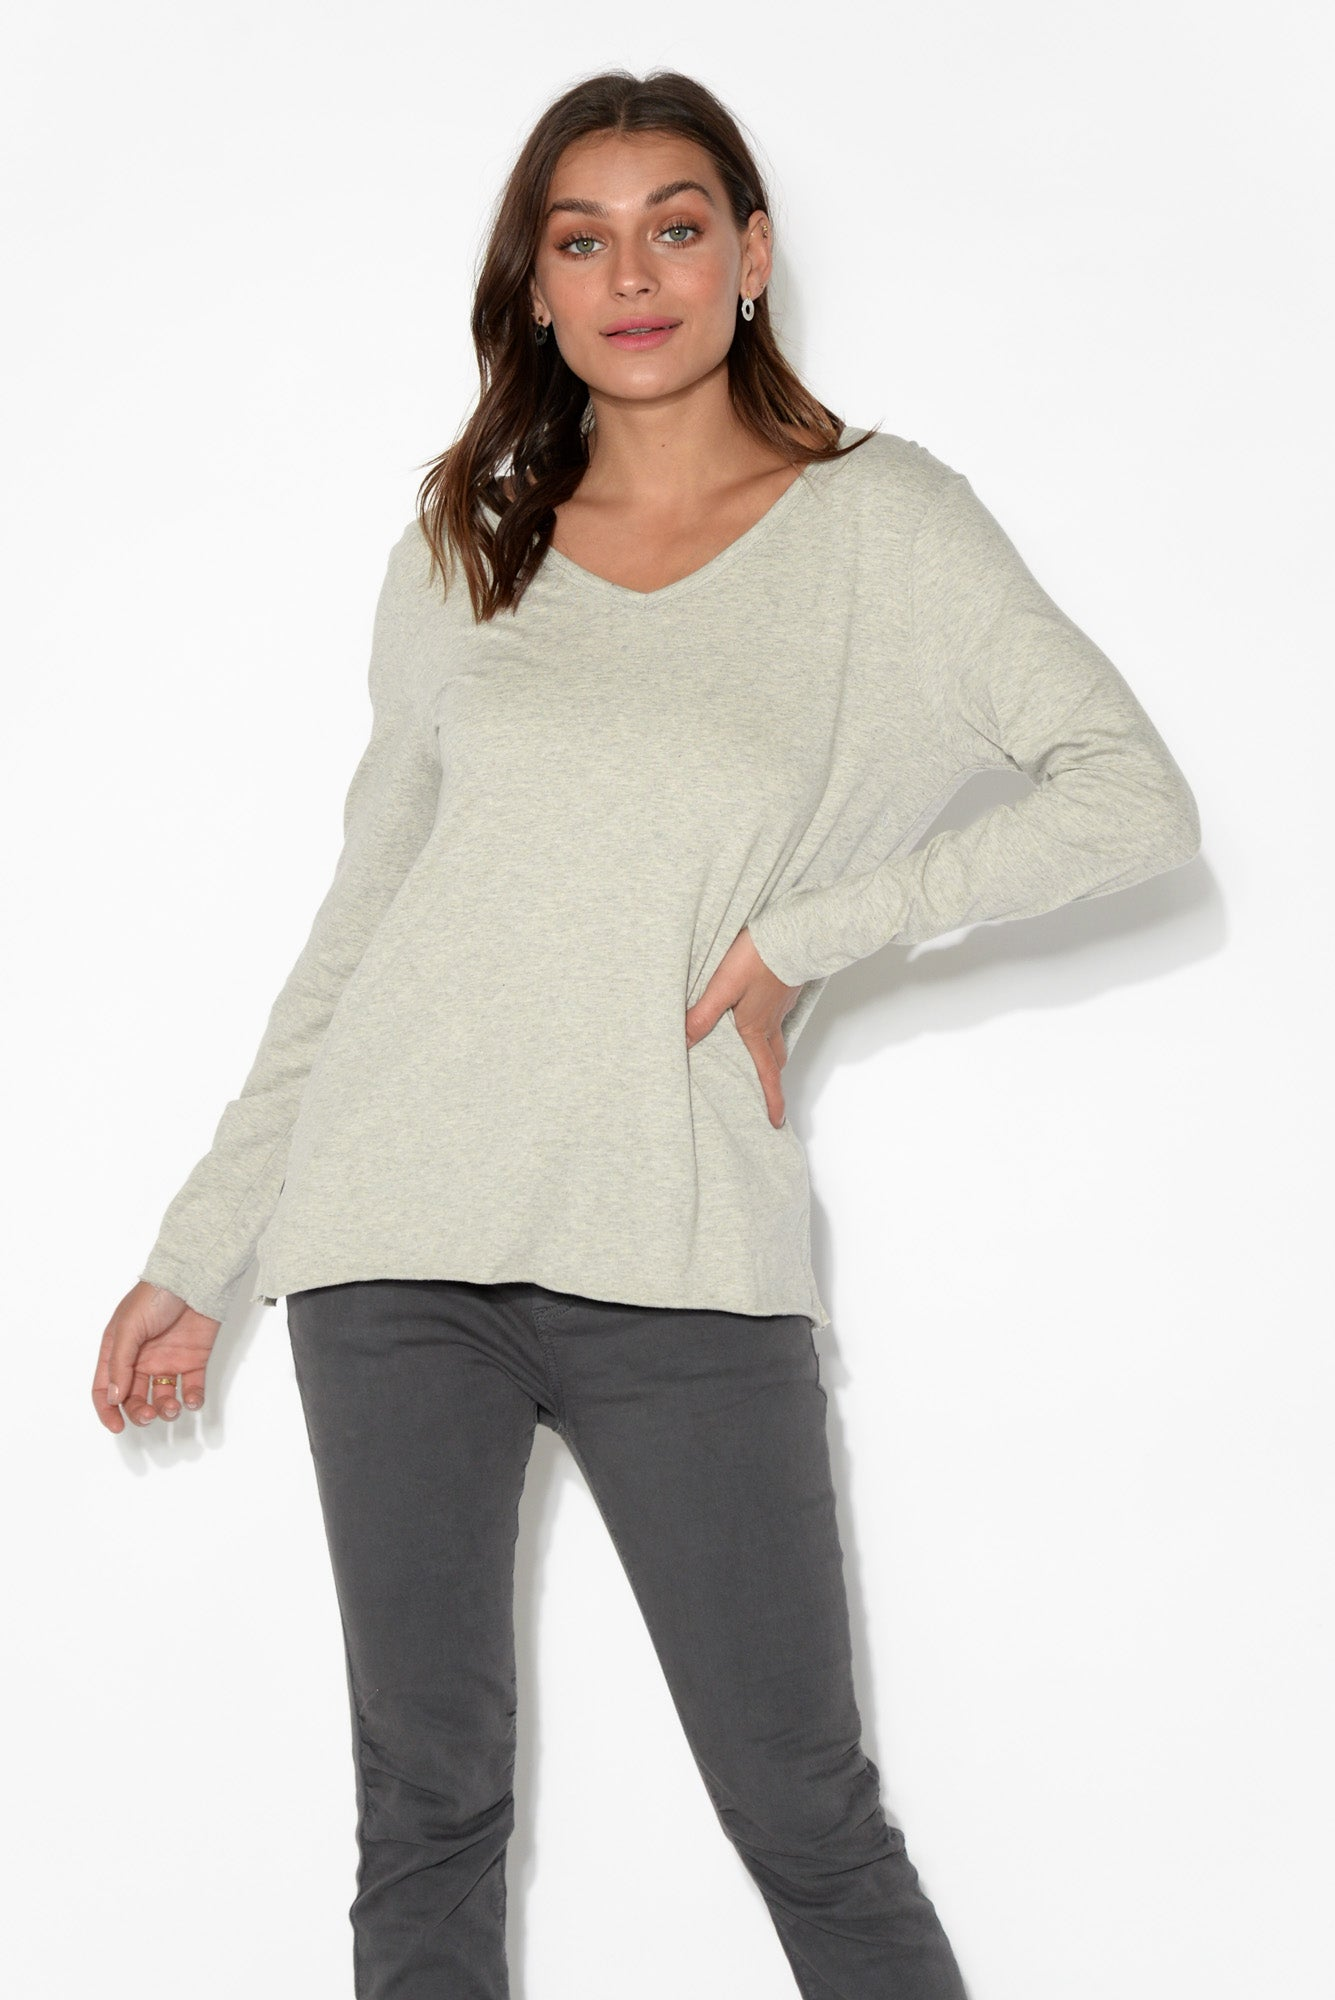 Abigale Grey Marle Long Sleeve Cotton Top